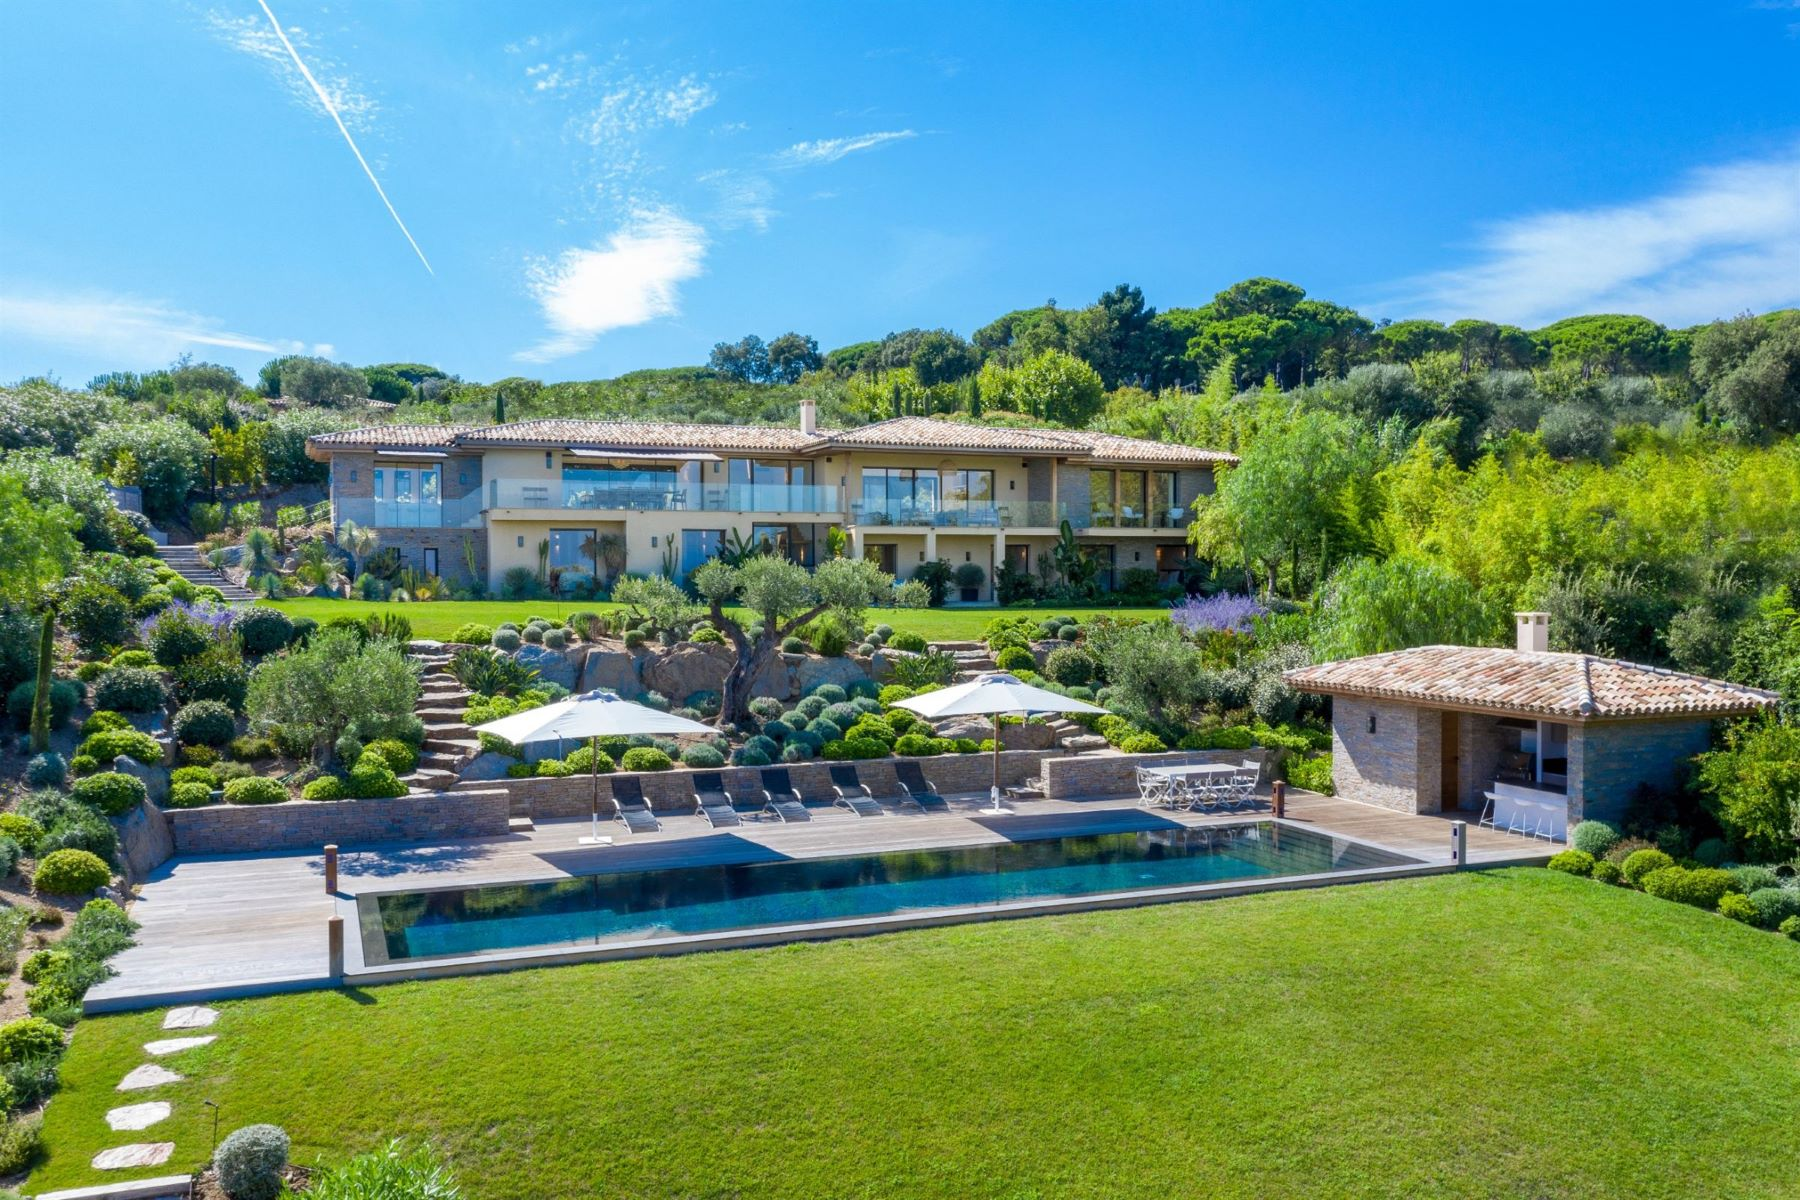 Single Family Homes for Sale at Magnificent contemporary style property in Saint-Tropez Saint Tropez, Provence-Alpes-Cote D'Azur 83990 France